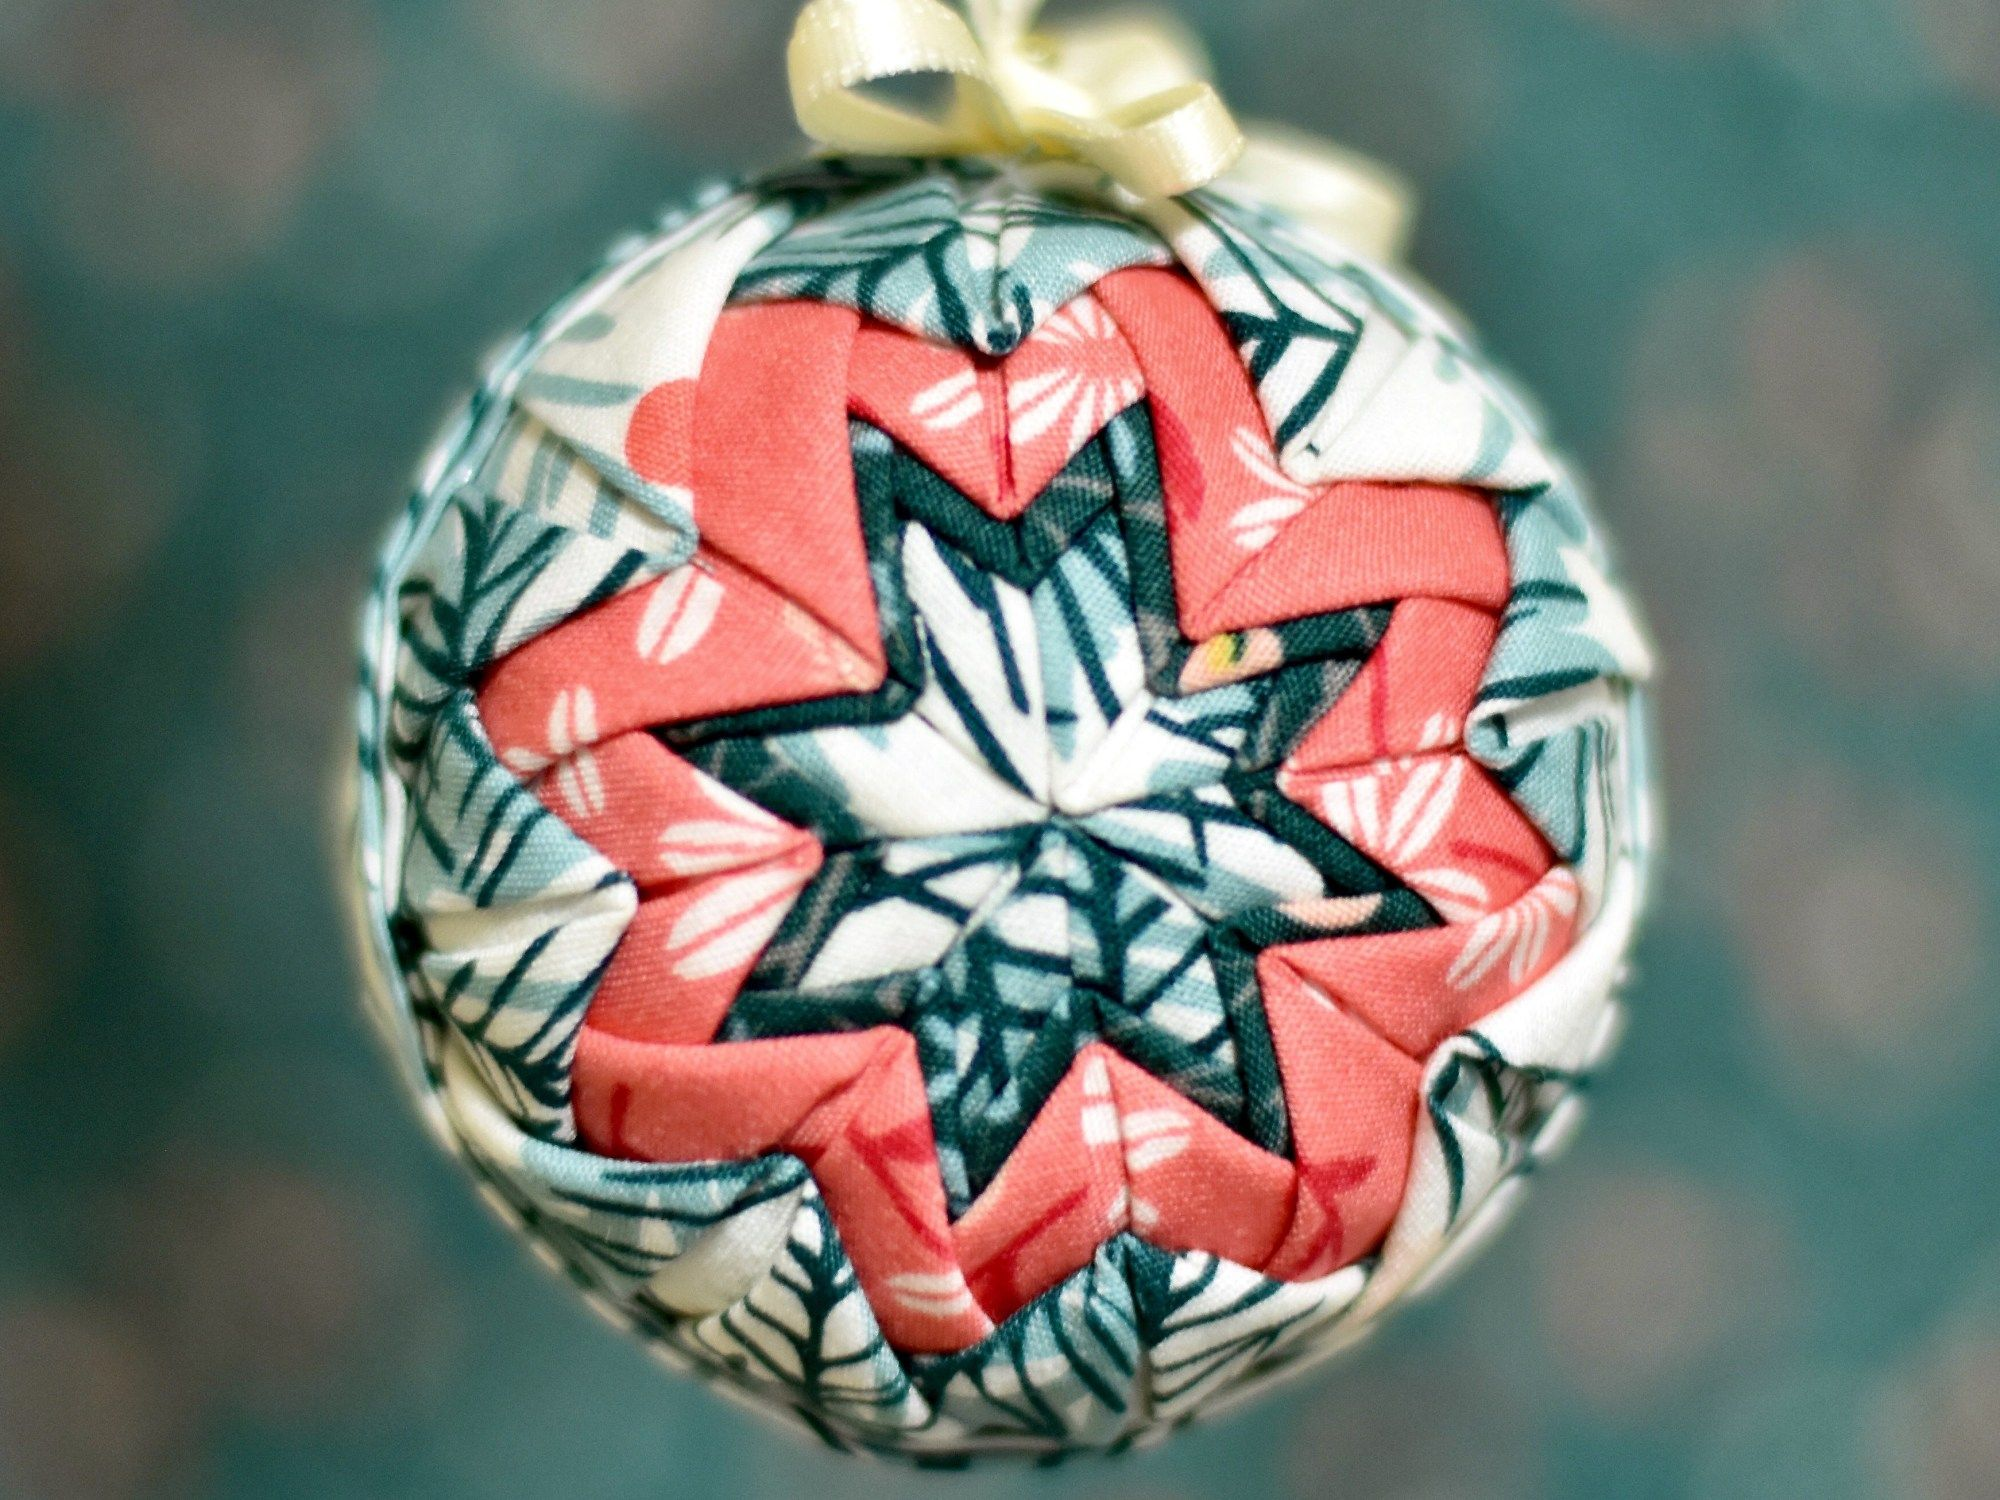 Quilted Ball Ornament - Ornament Along #4 | Quilted christmas ornaments, Ornaments, Ball ornaments